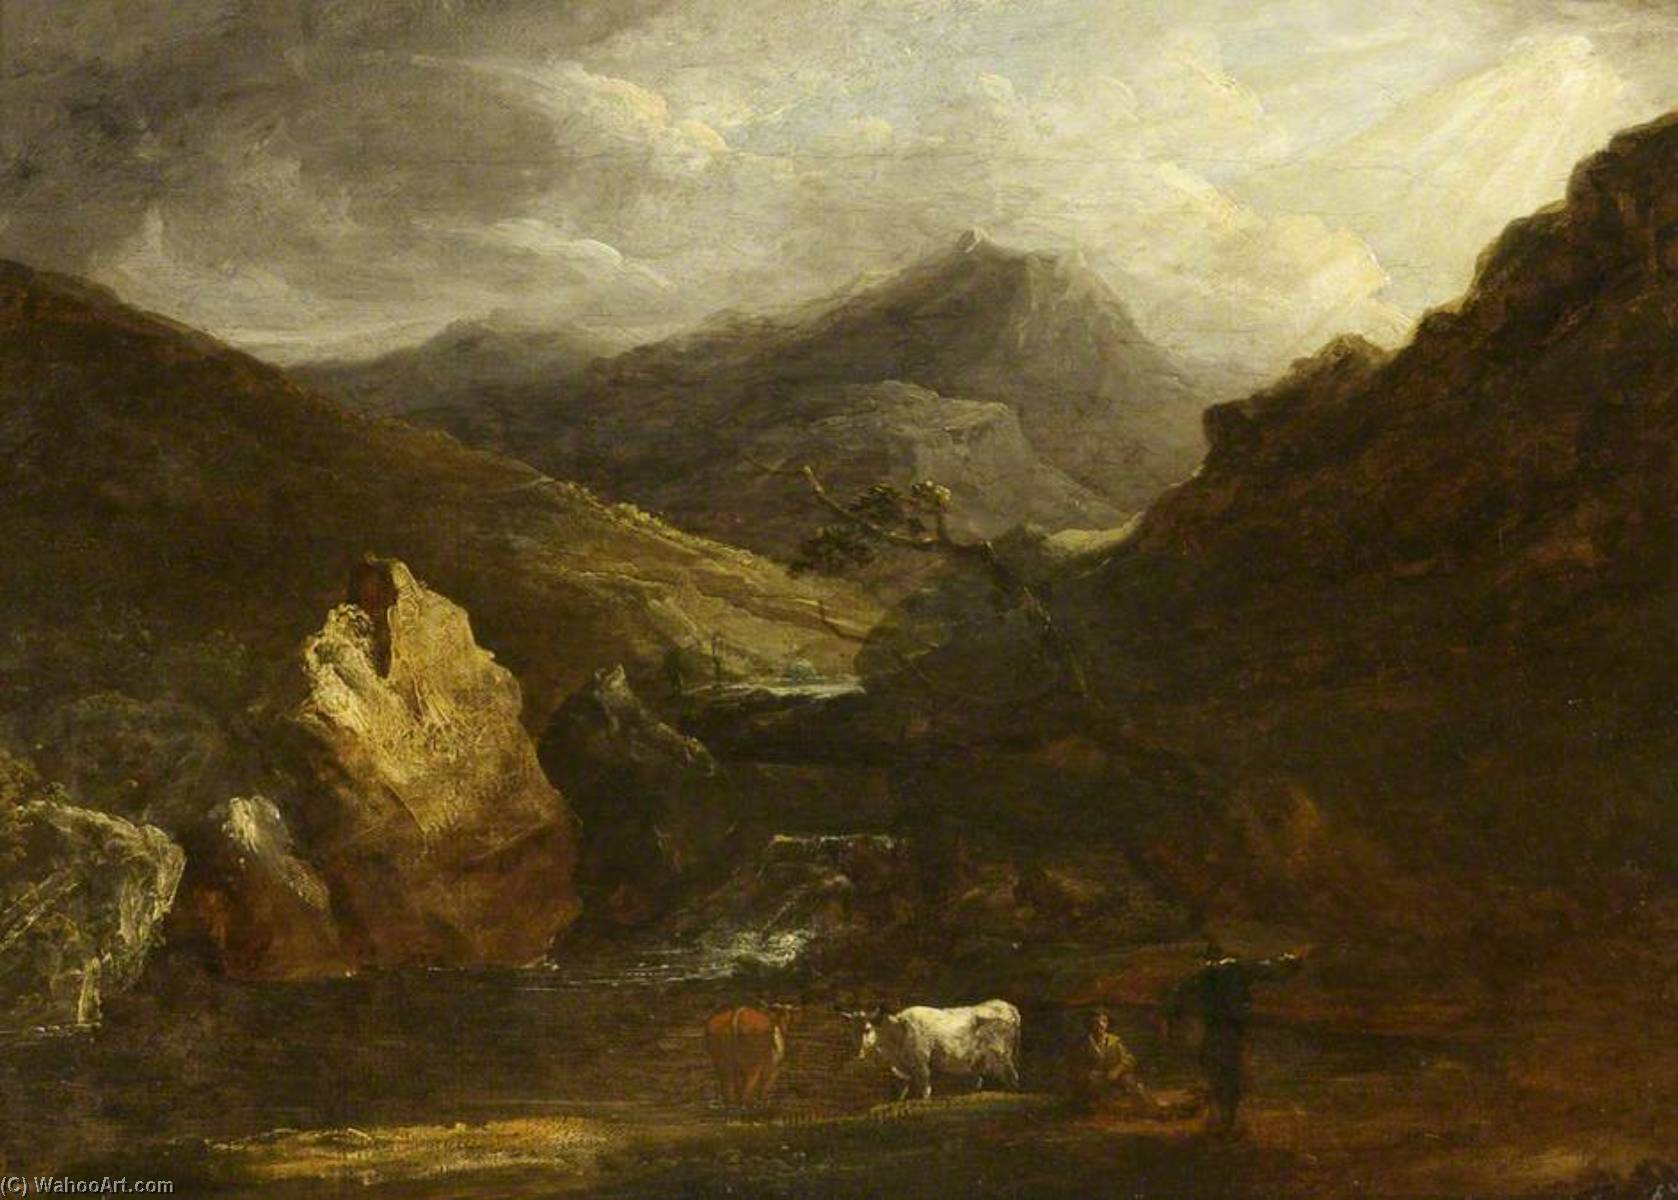 Mountain Landscape with View of Snowdon, 1815 by Benjamin Barker Ii | Famous Paintings Reproductions | WahooArt.com